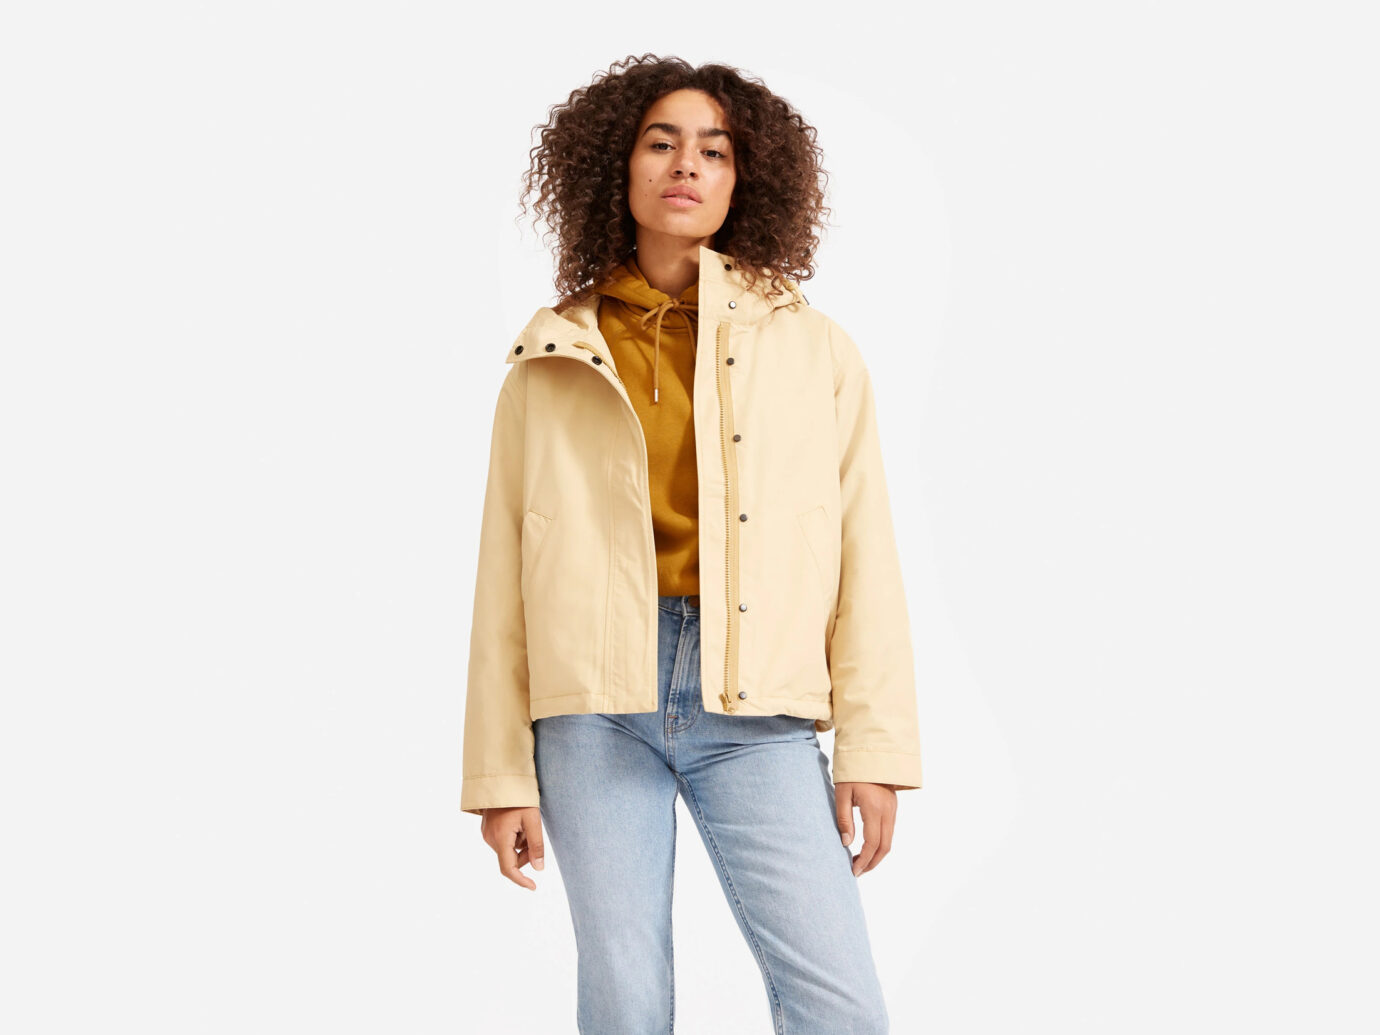 Everlane ReNew Windbreaker